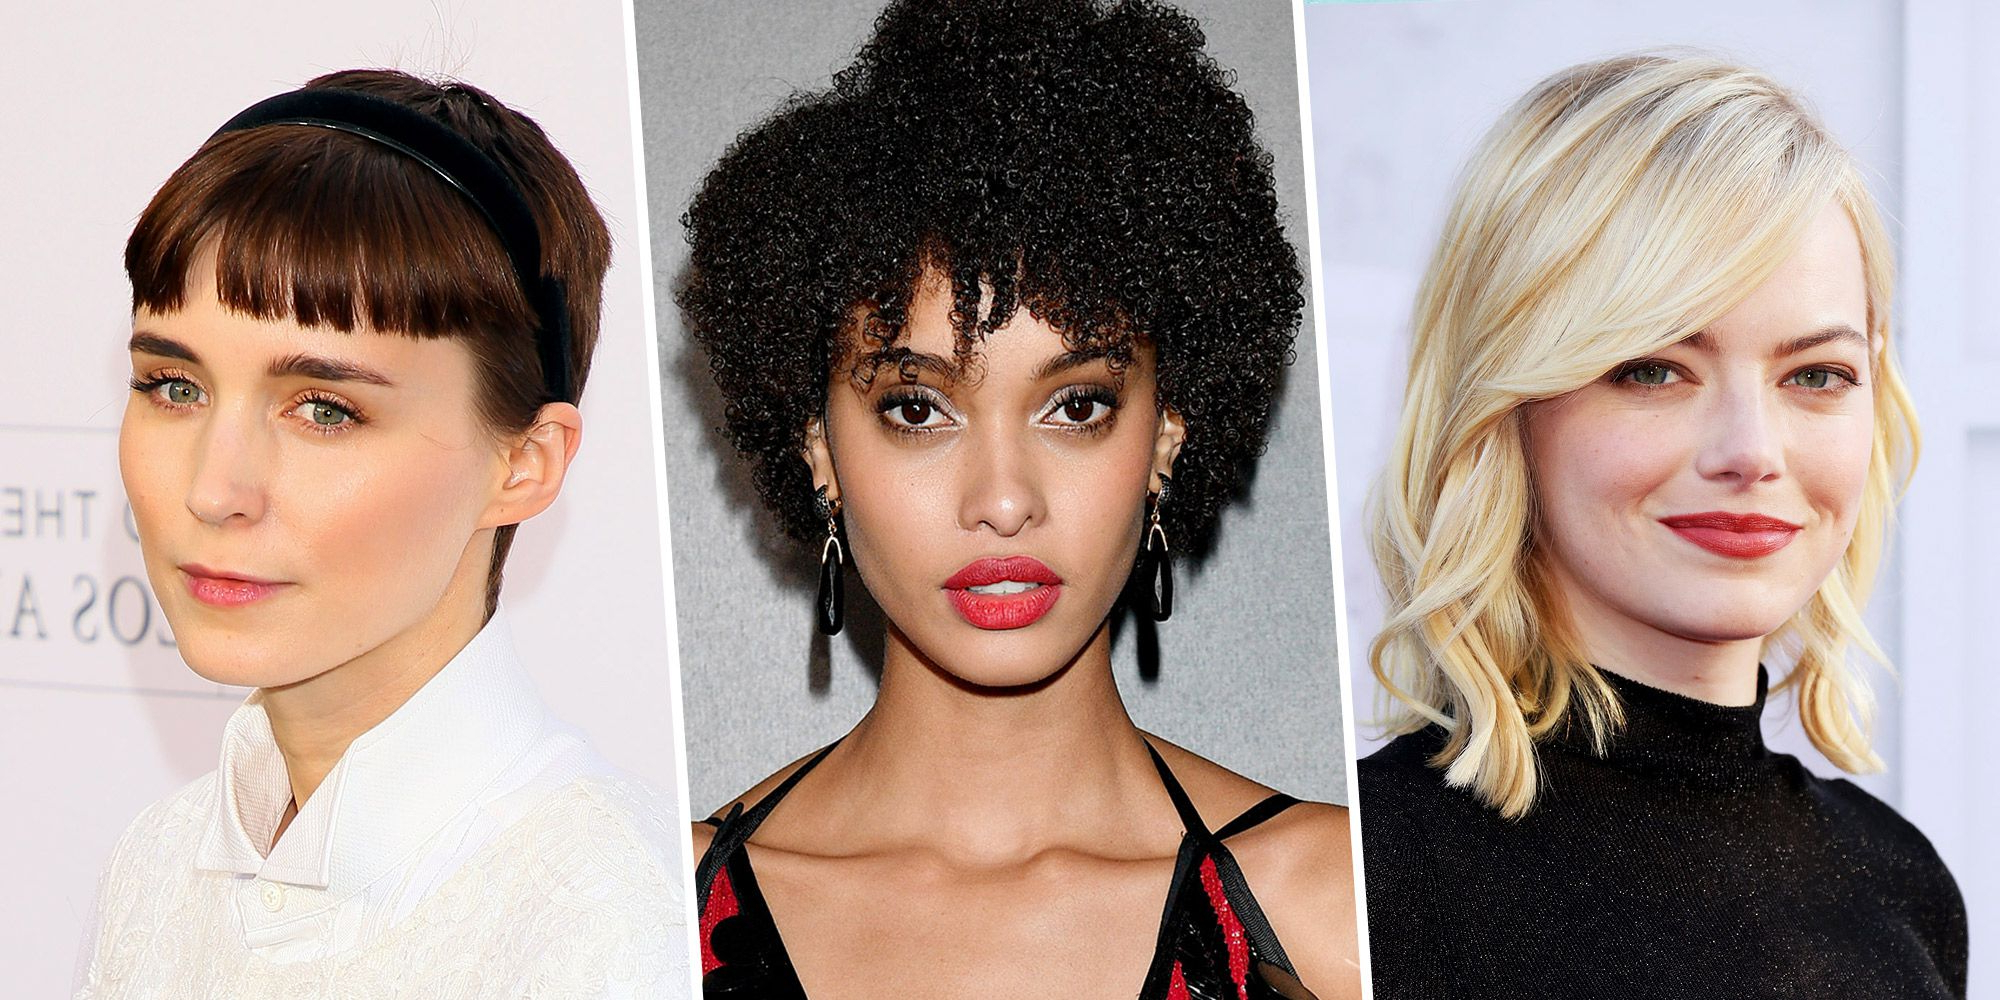 65 Best Short Hairstyles, Haircuts, And Short Hair Ideas For 2018 With Regard To Short Hairstyles For Spring (View 4 of 25)